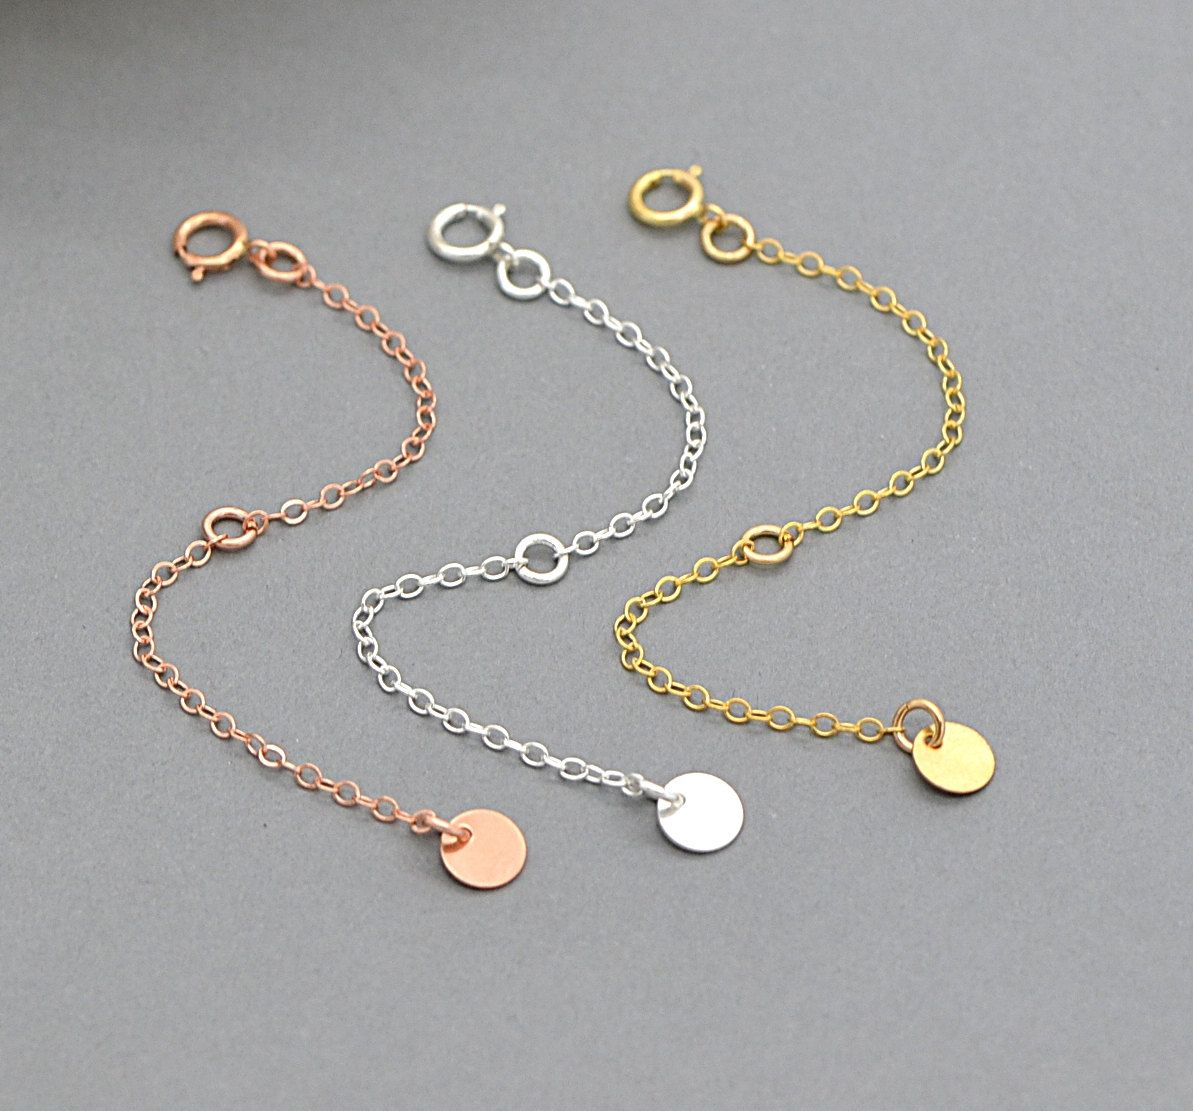 Extension Chain Extender Chain 14k Gold Filled Sterling Silver